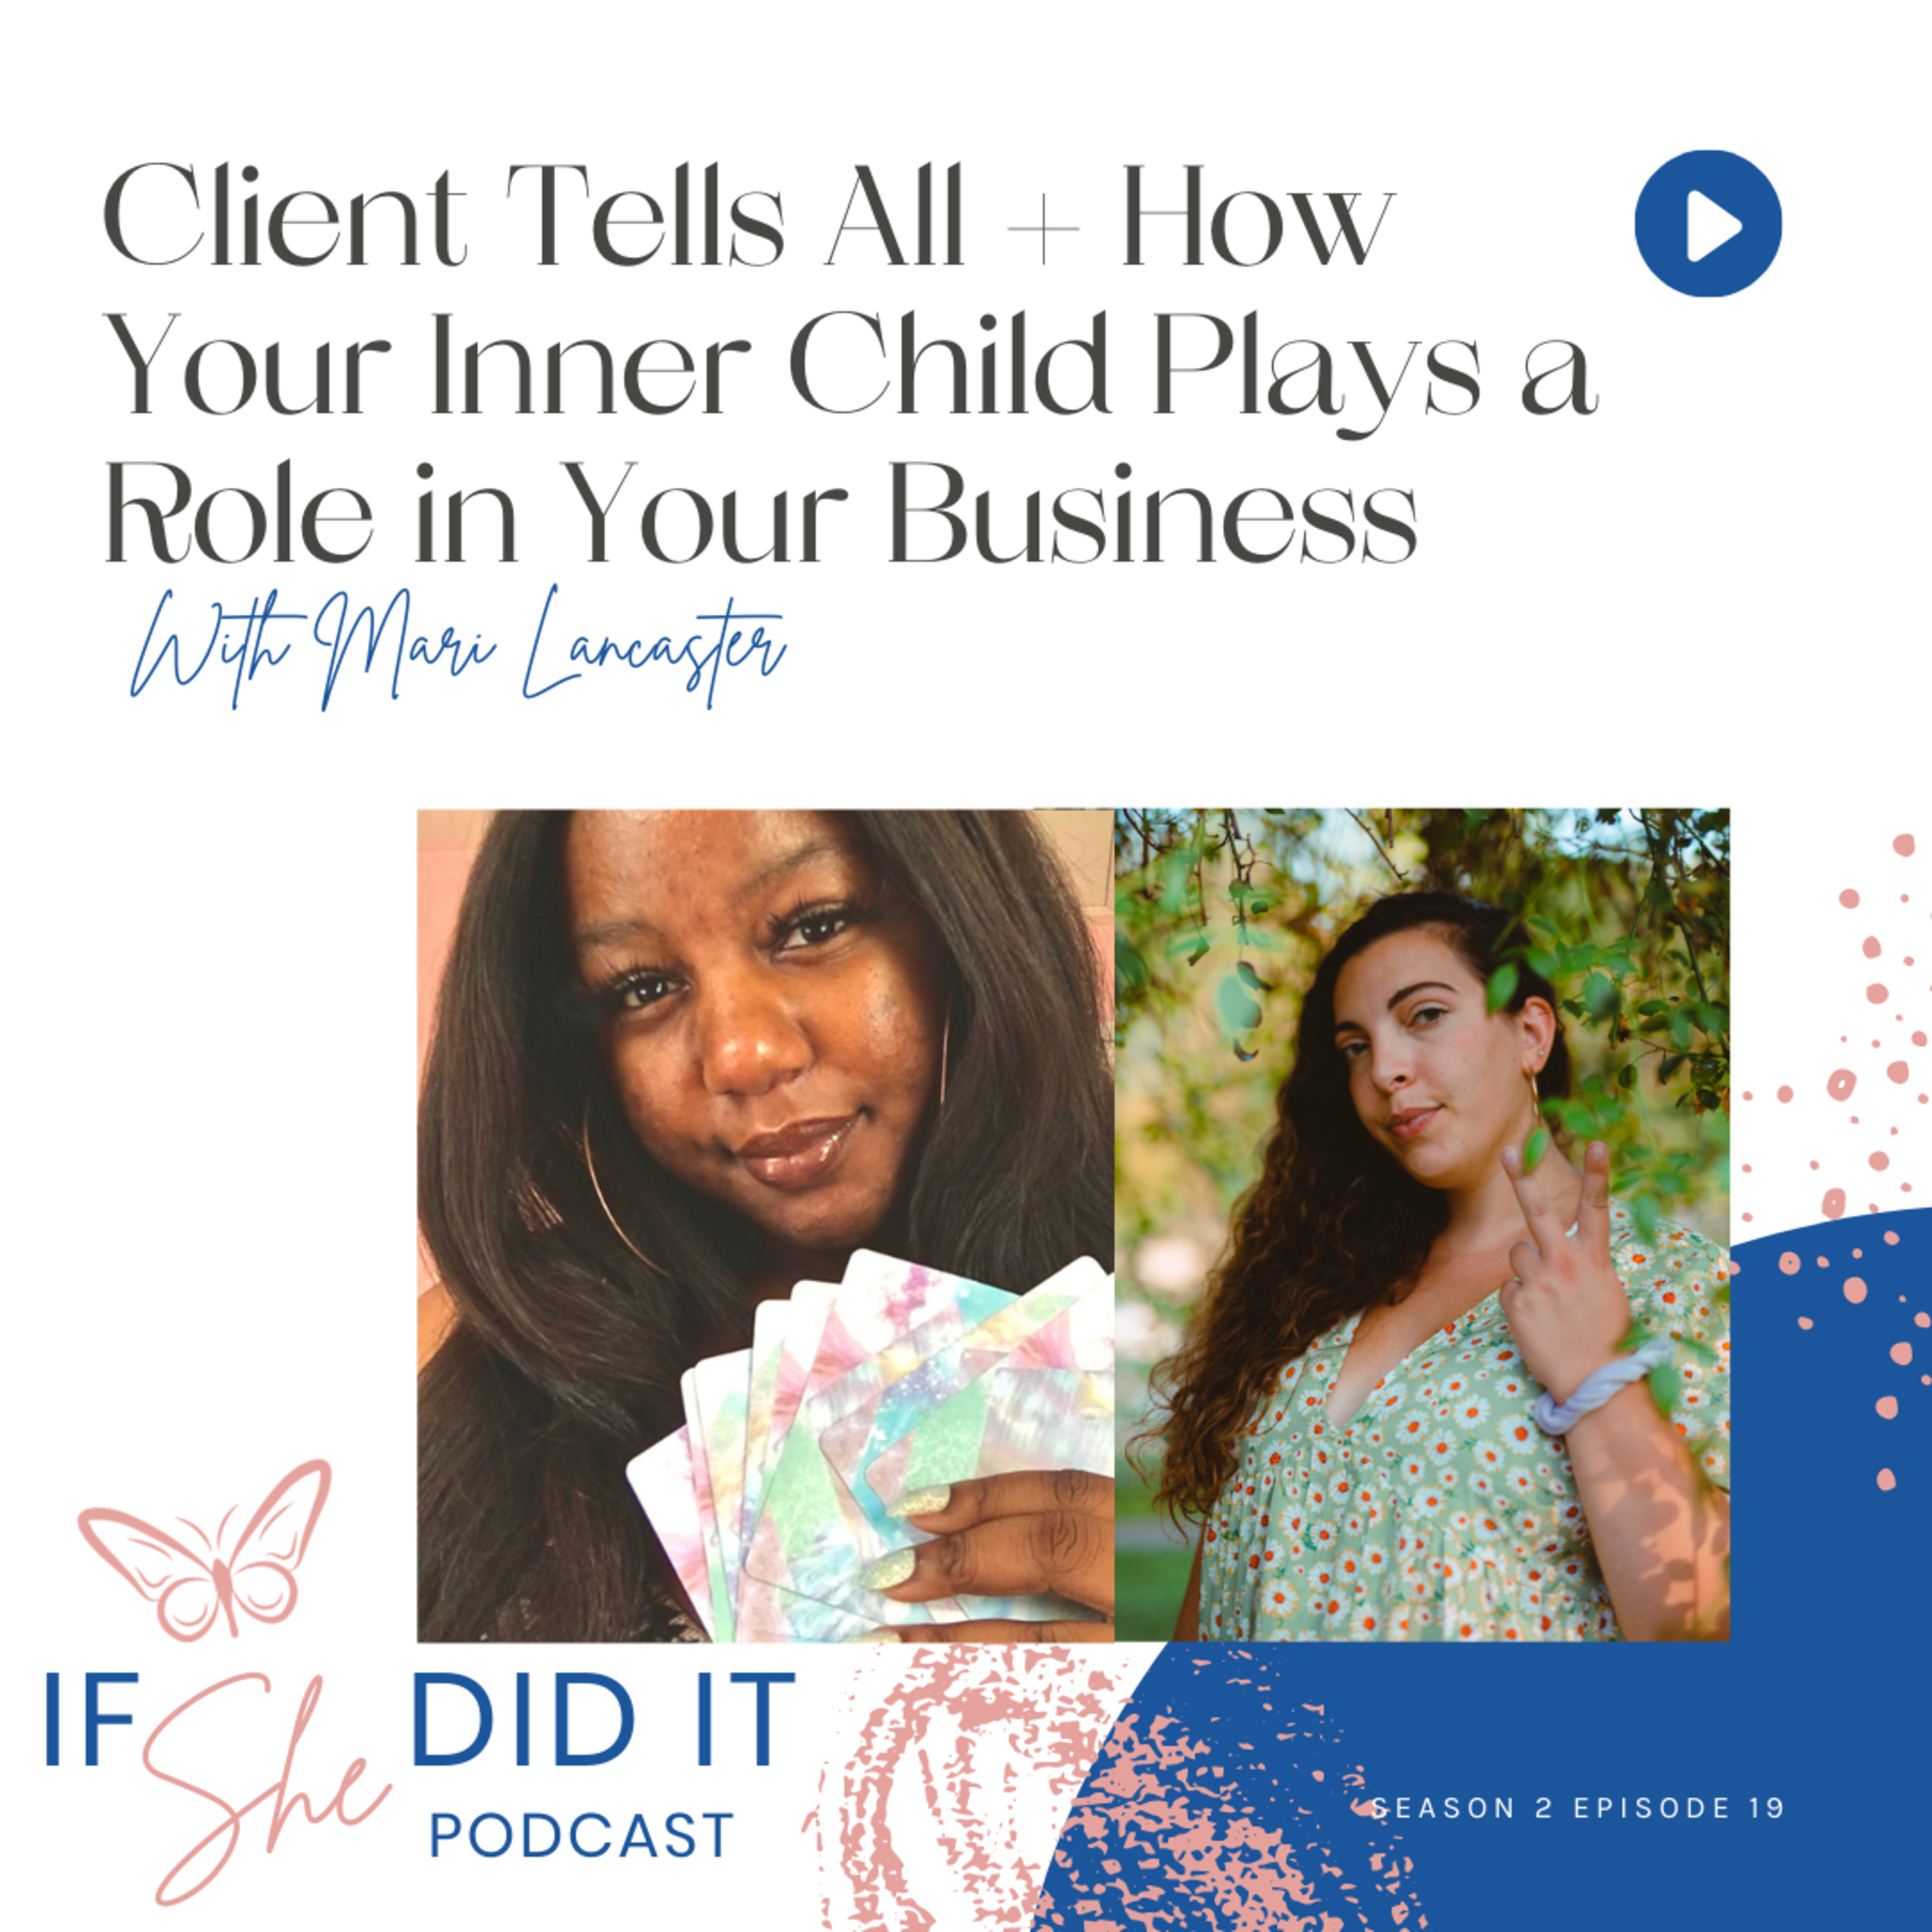 Client Tells All + How Your Inner Child Plays a Role in Your Business